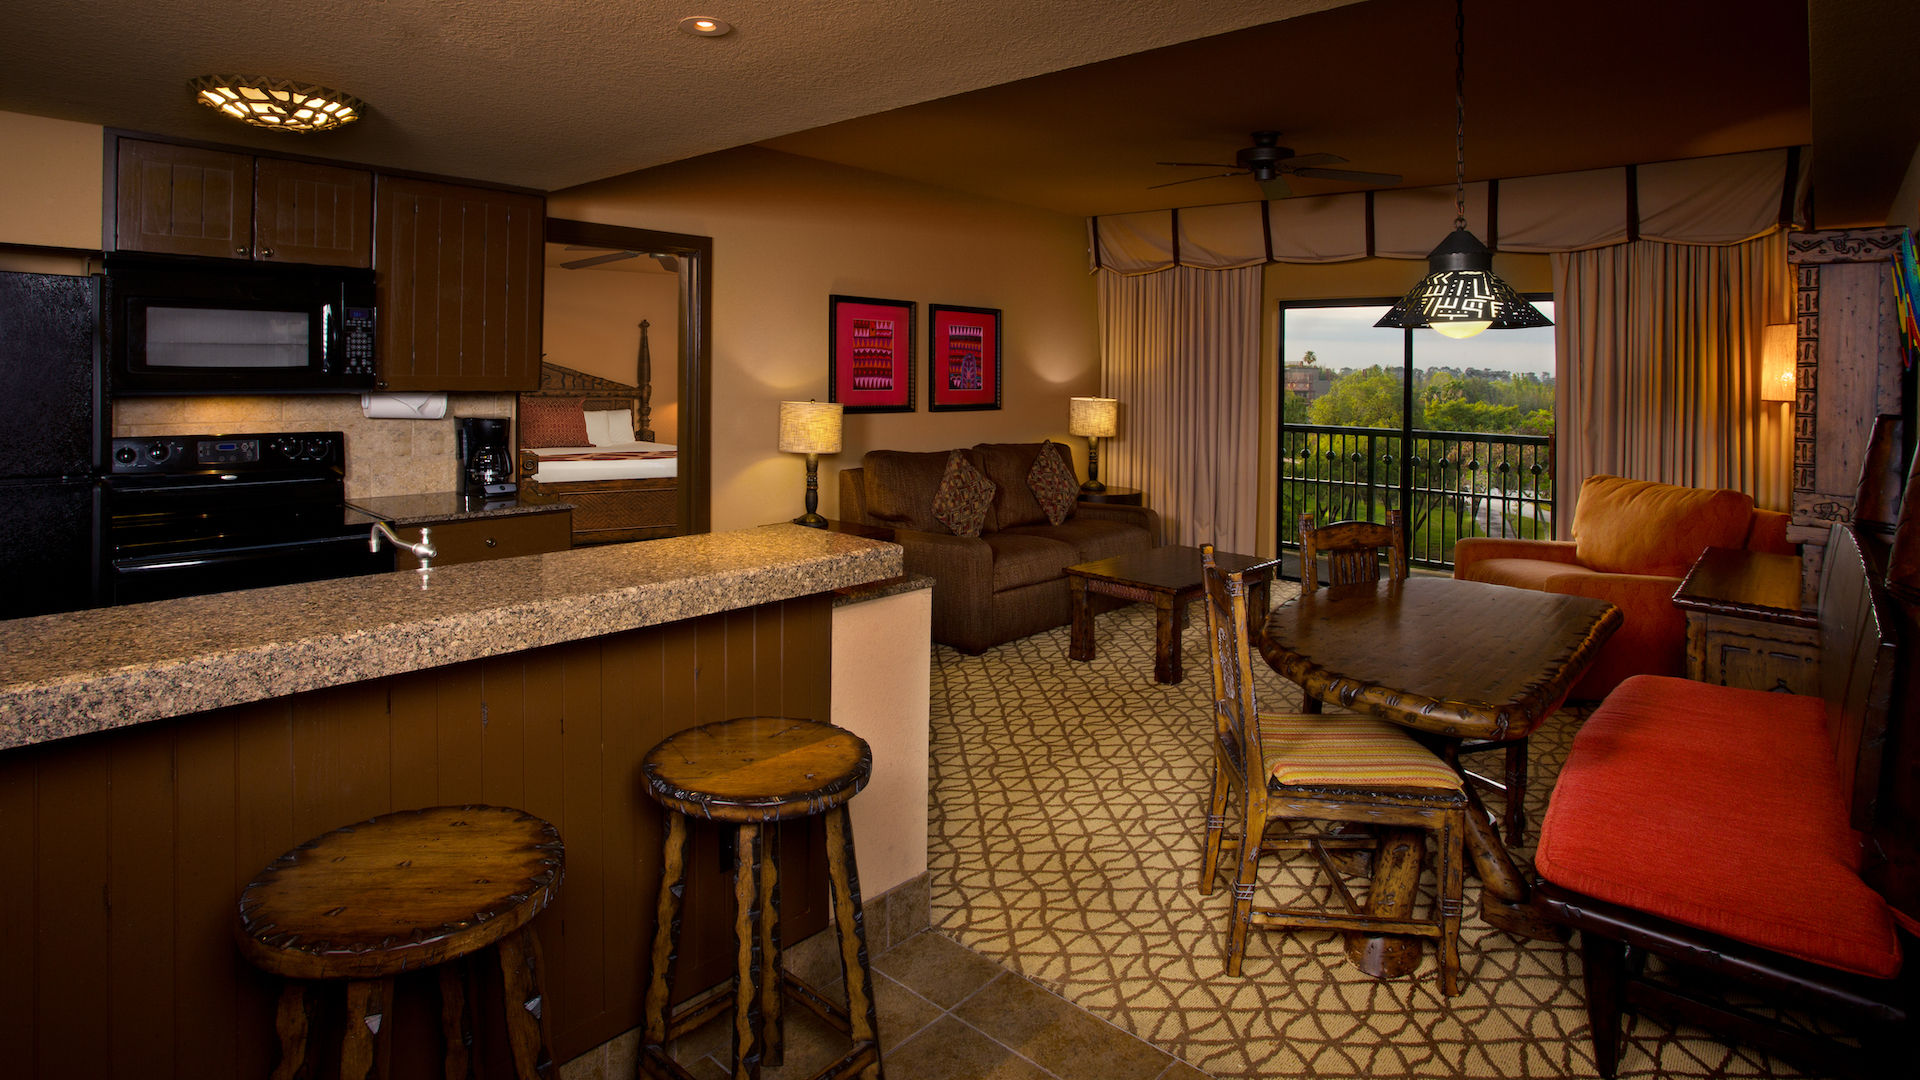 Animal Kingdom Lodge - Disney Resorts for Families of 5 or More